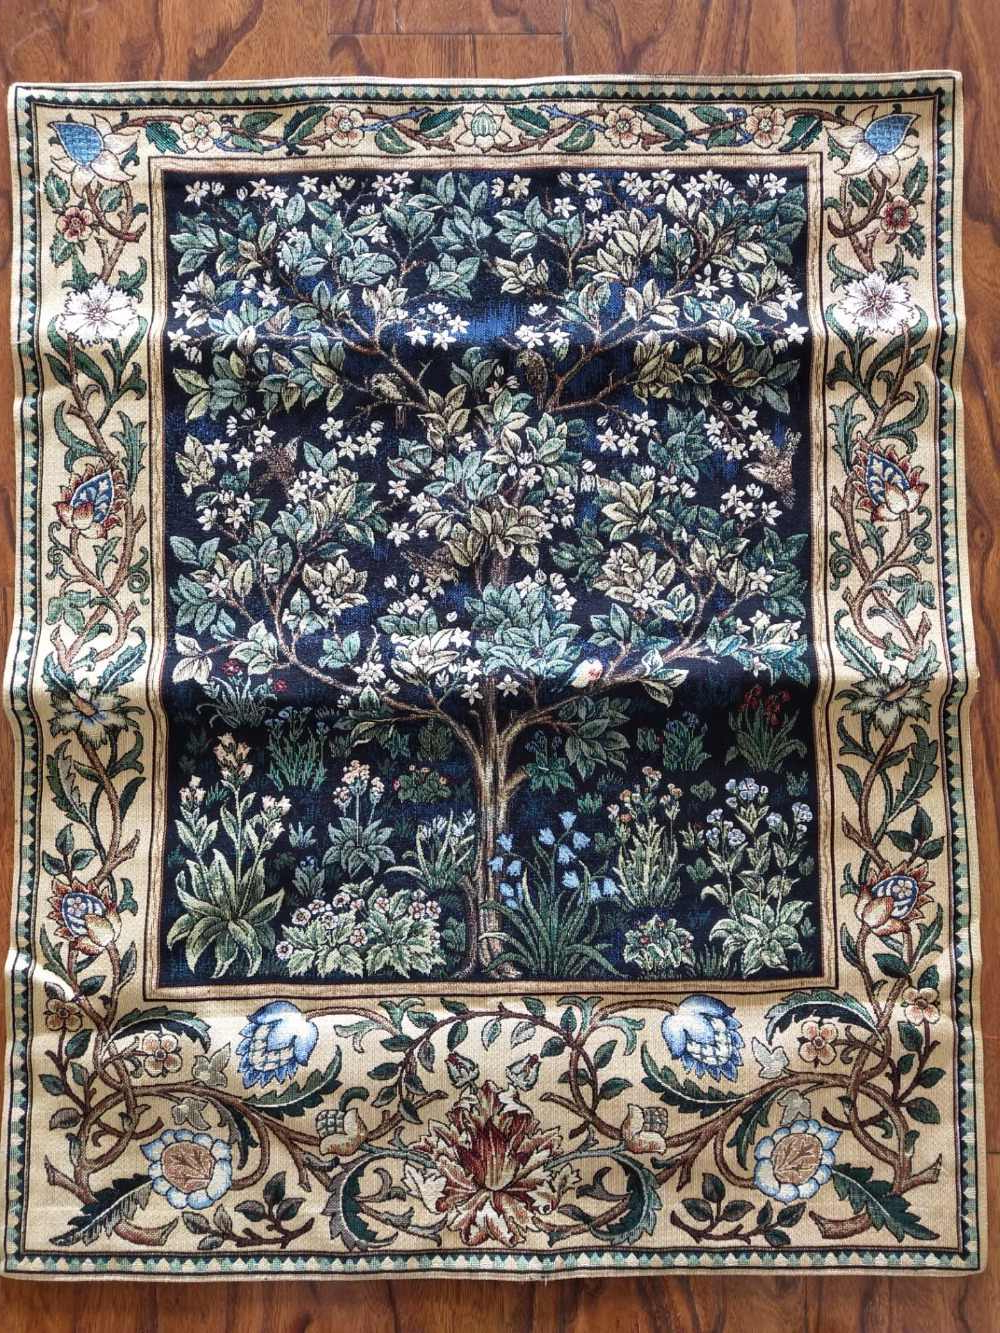 Latest Blended Fabric Tree Of Life, William Morris Wall Hangings Inside Belgium William Morris Works Tree Of Life Home Textile Jacquard Fabric Product Tapestry Wall Hangings Happy Fortune Tree Decorat (View 17 of 20)